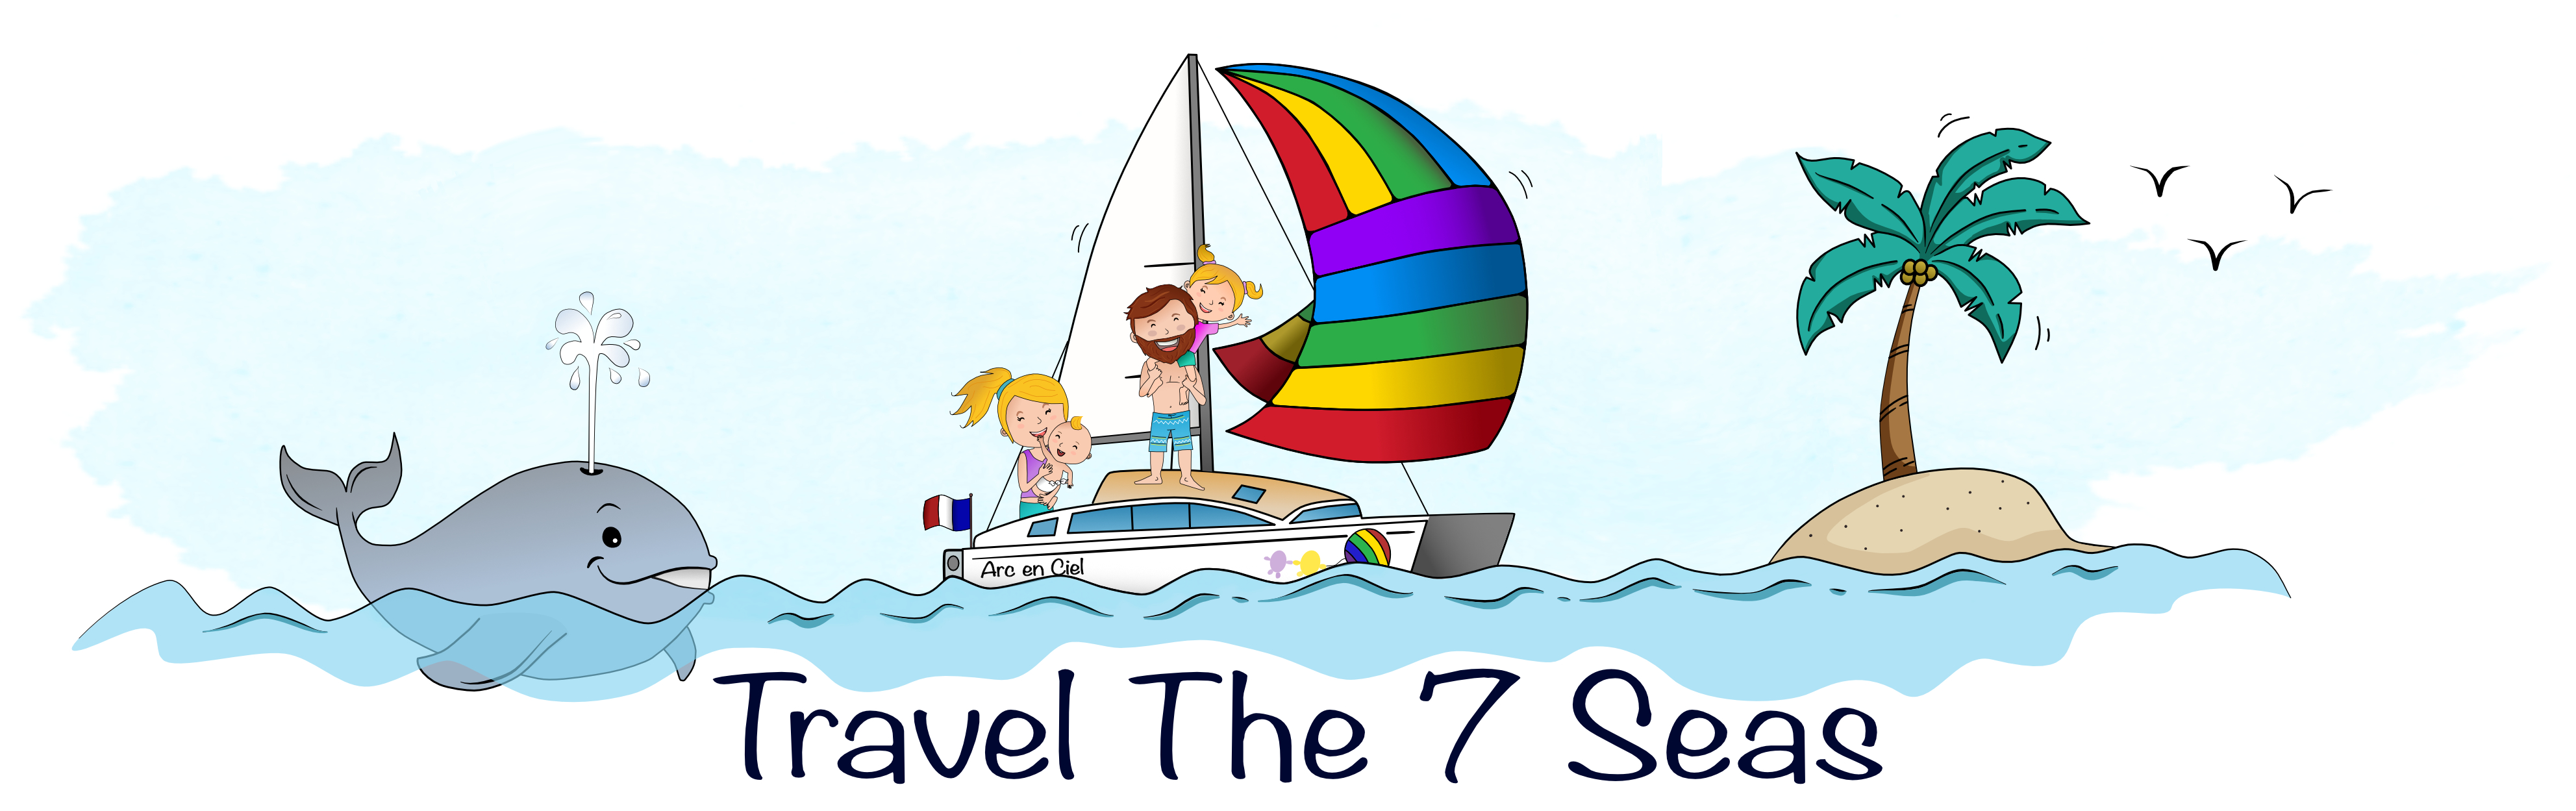 Travel The 7 Seas